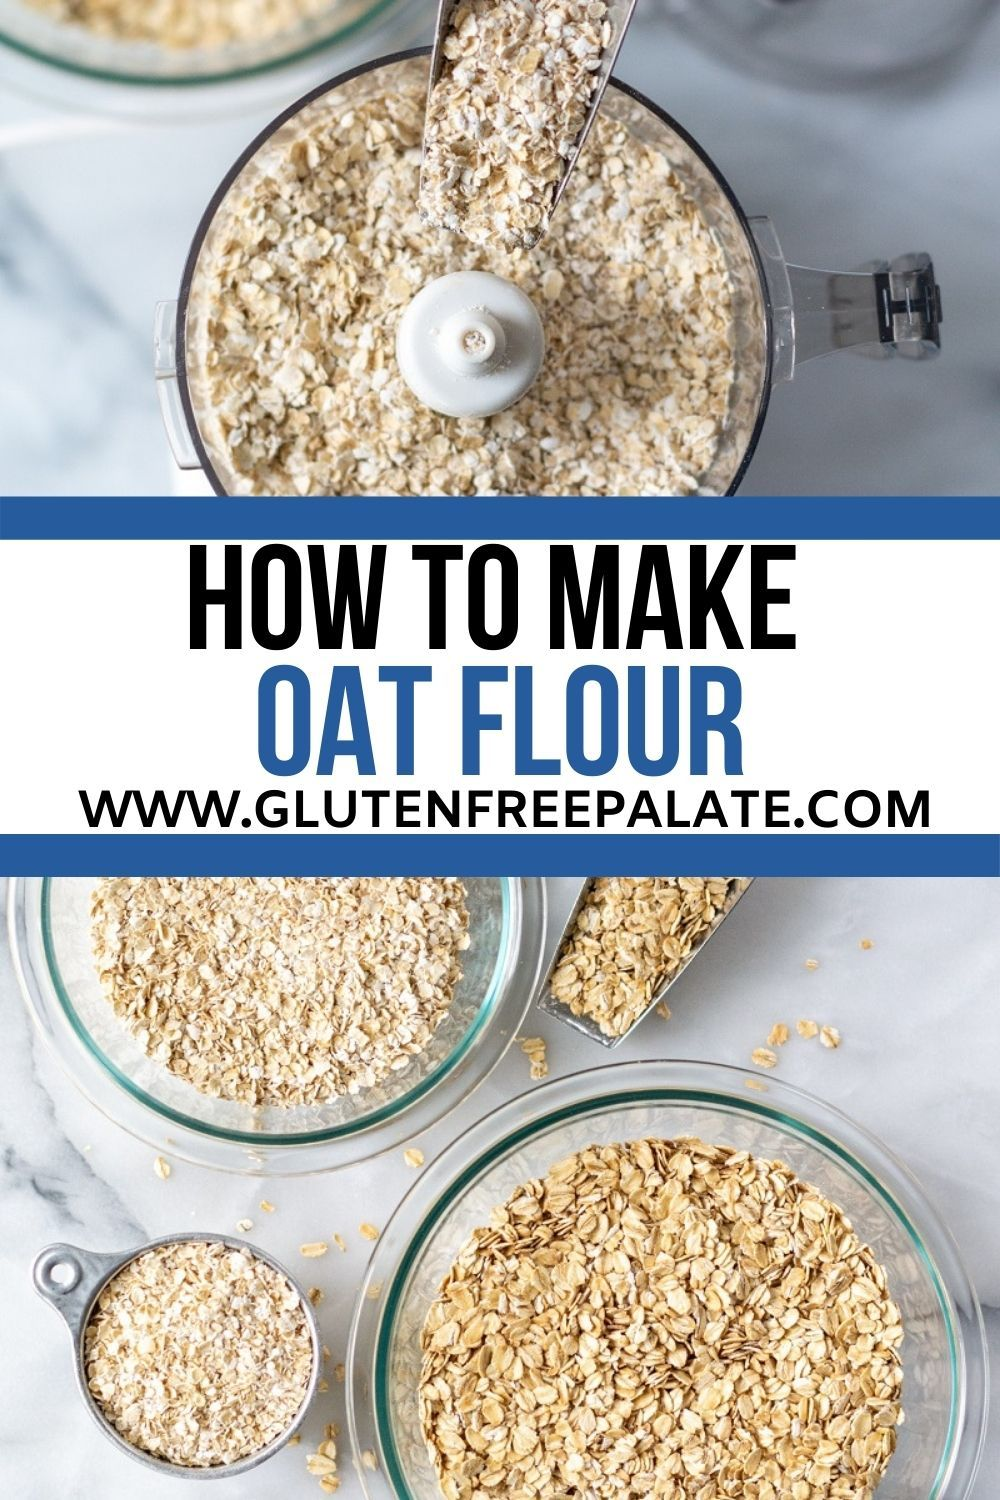 How To Make Oat Flour Gluten Free Recipes Easy Easy Gluten Free Desserts How To Make Oats